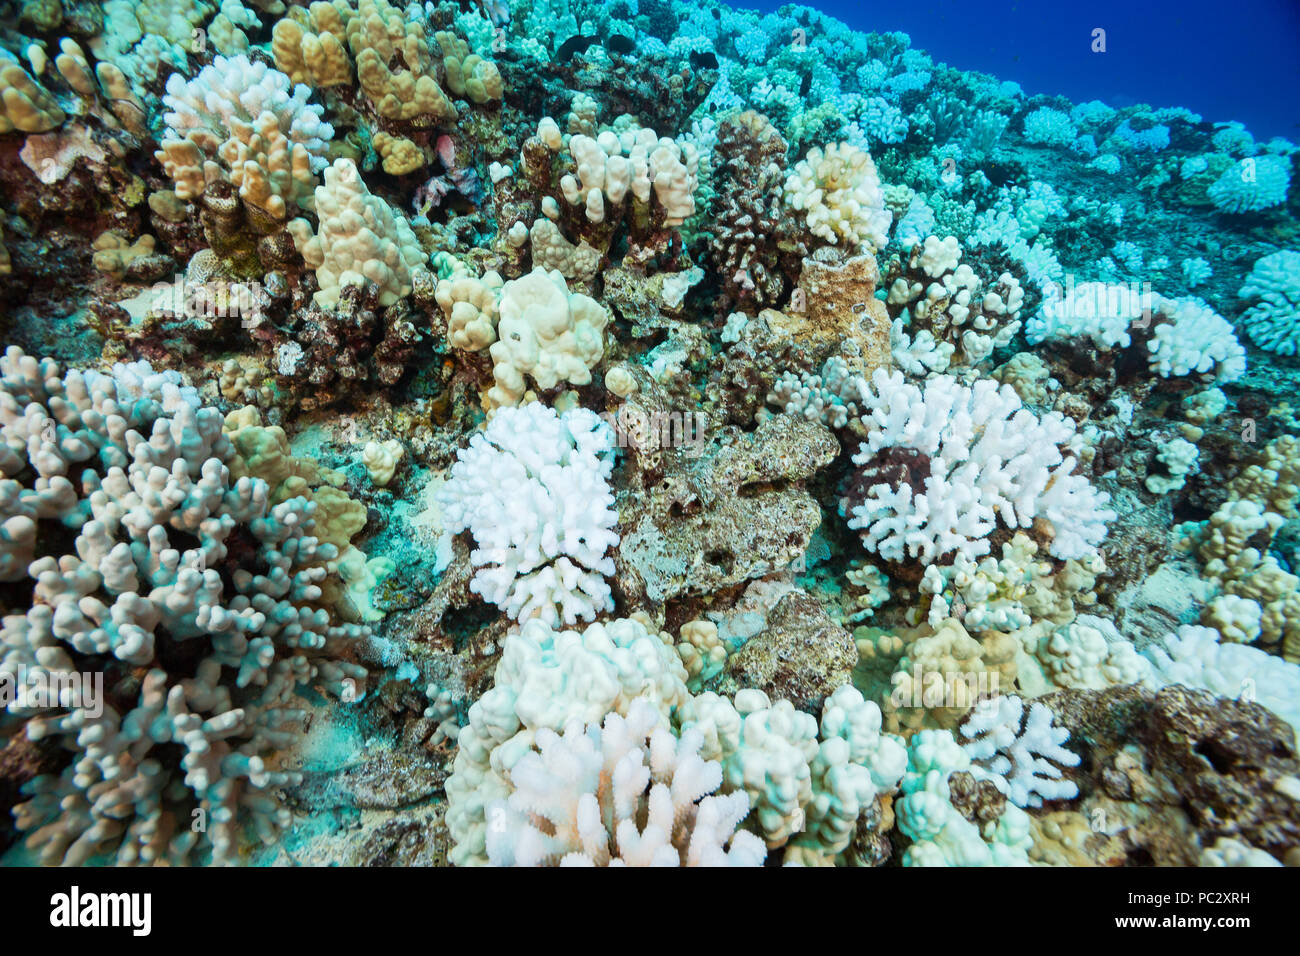 This image, shot in October 2015, shows coral bleaching on a Hawaiian reef. The colonies of cauliflower coral, Pocillopora meandrina, appears to be th - Stock Image